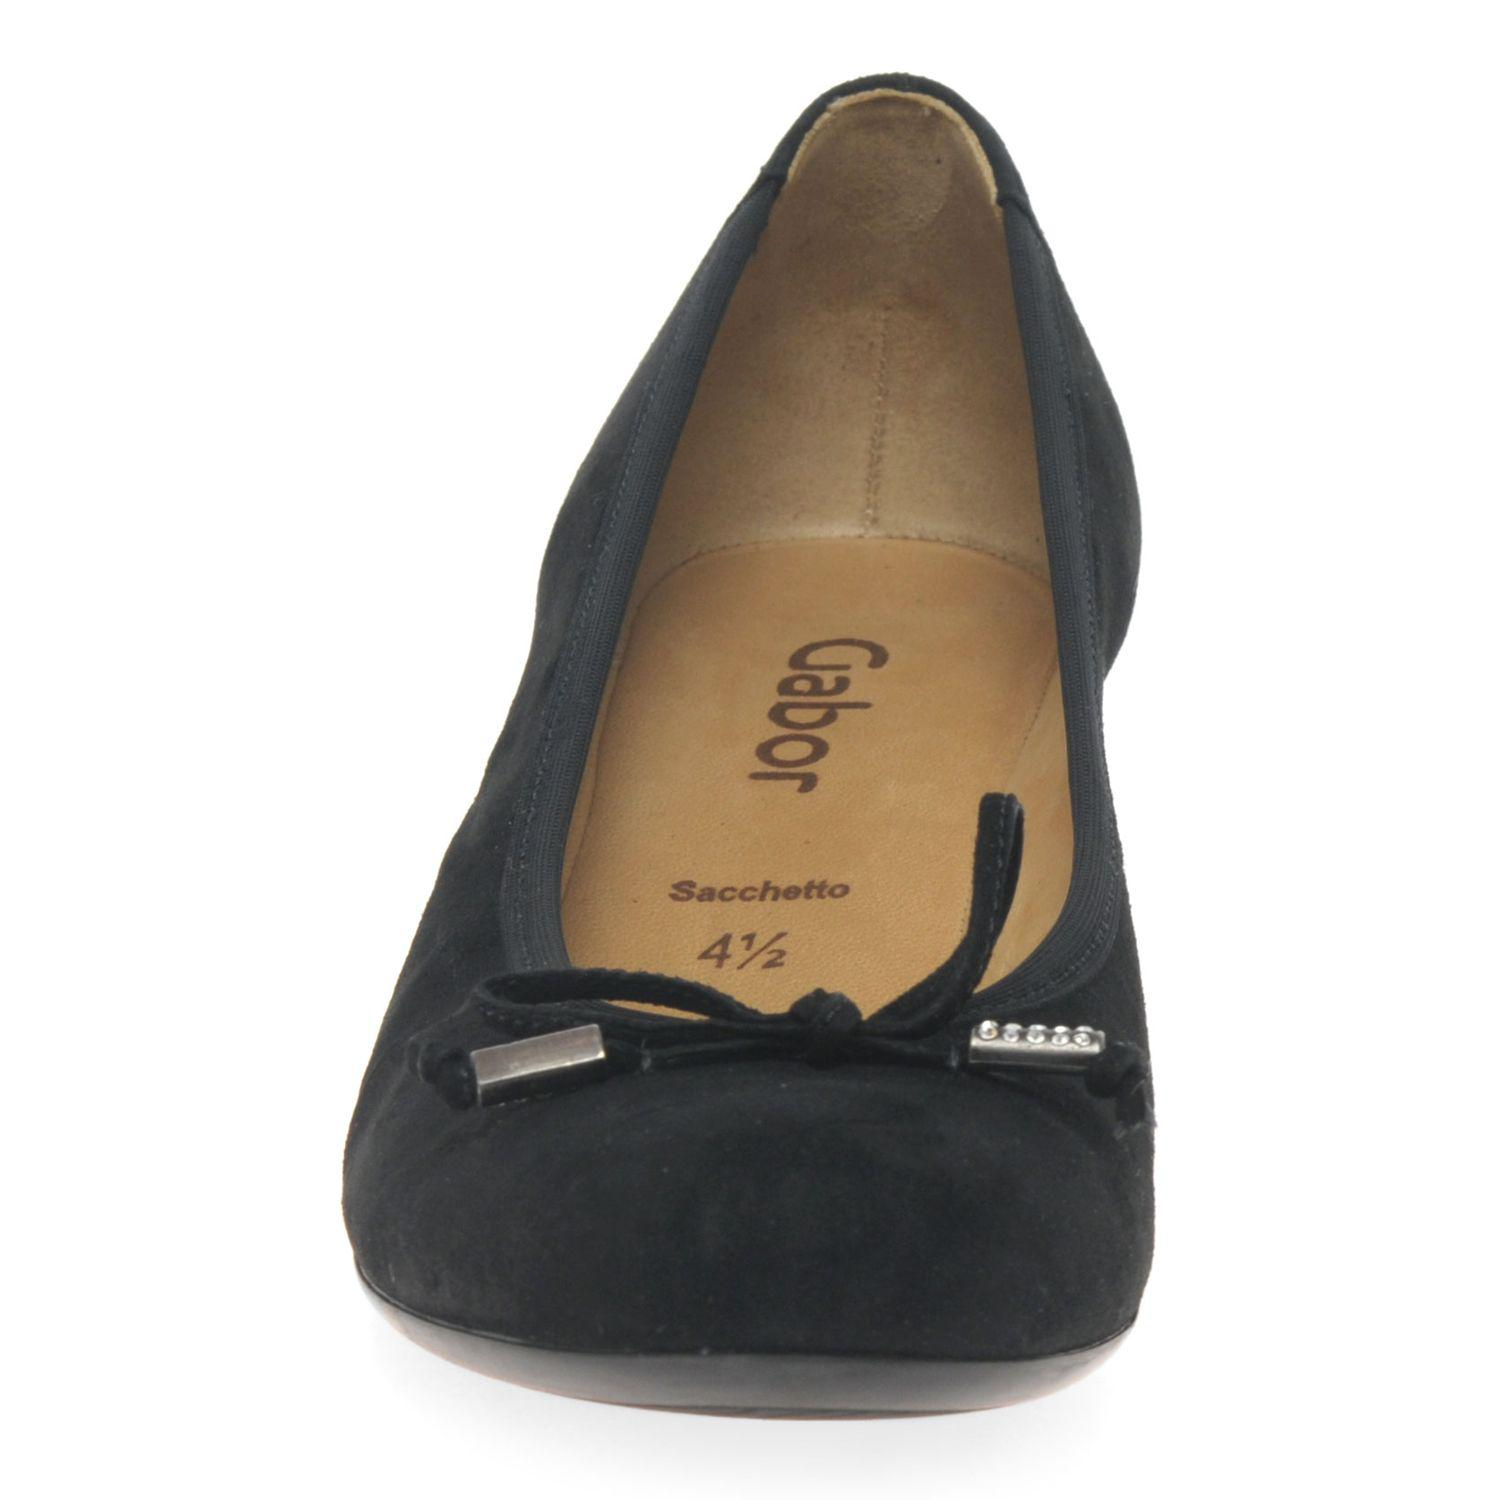 02de7a8d6a8 John Lewis Gabor Alvin Concealed Wedge Heel Court Shoes in Black - Lyst